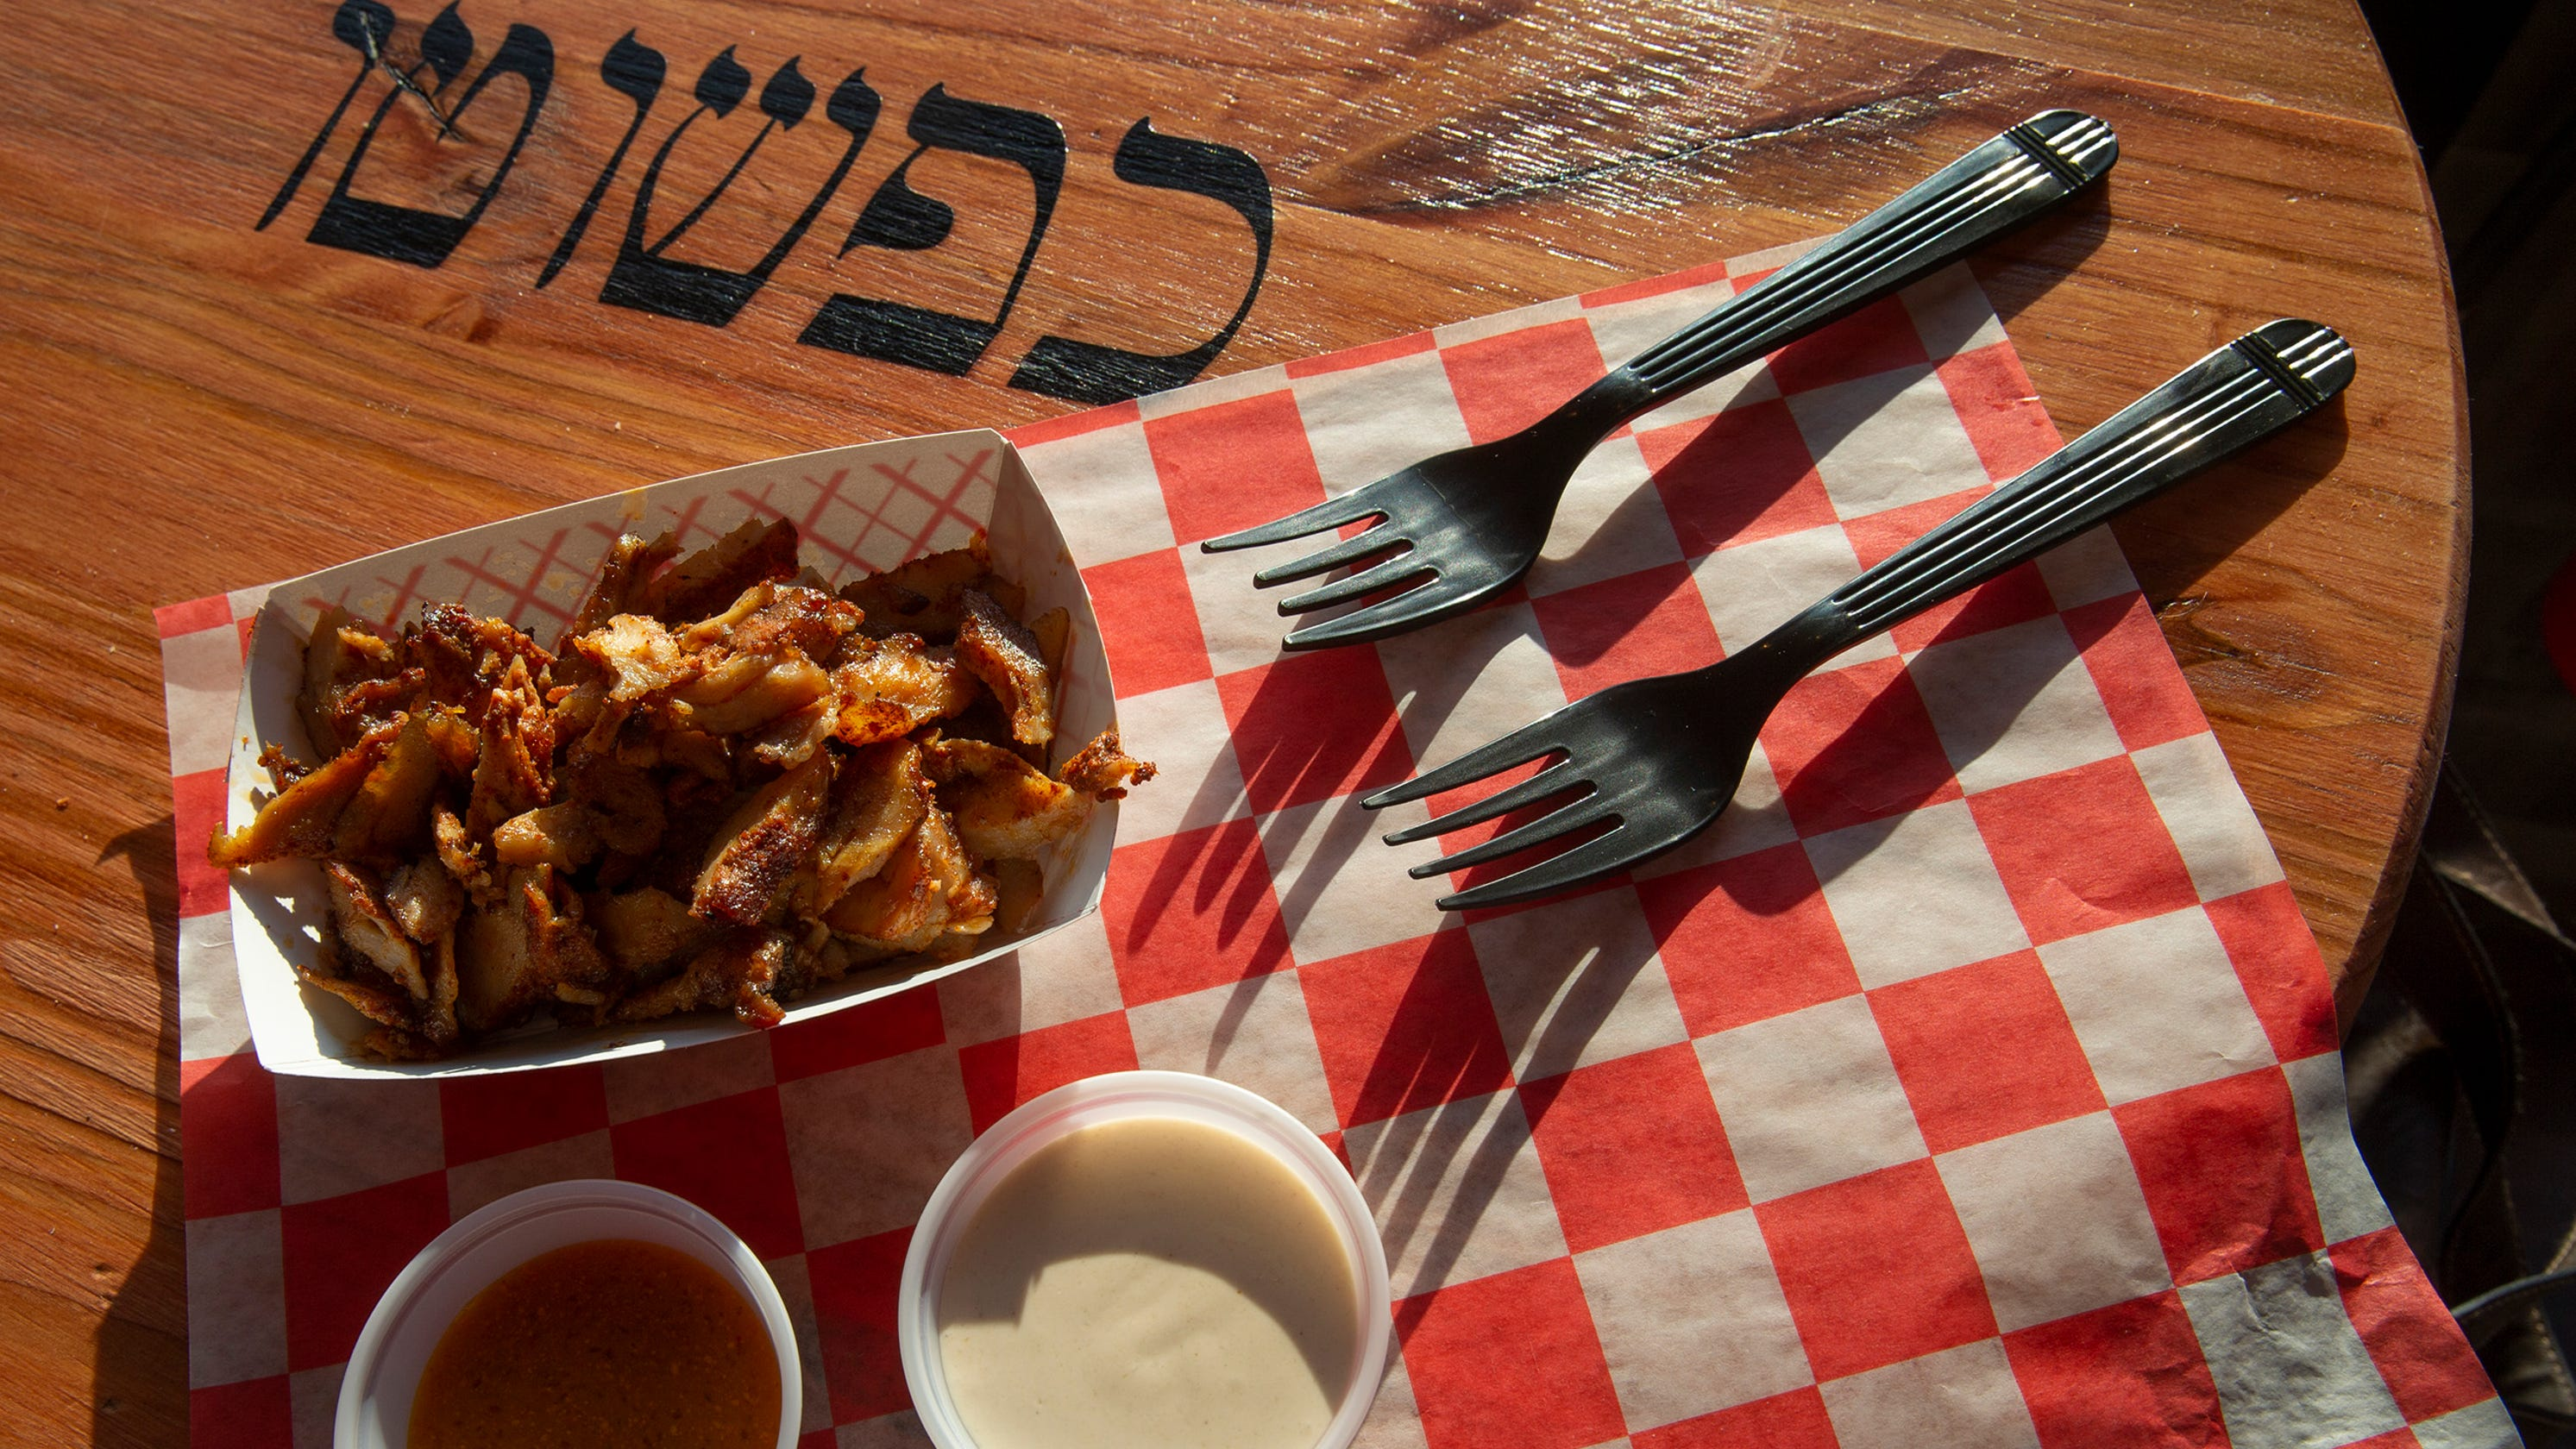 NJ restaurants: Lakewood's kosher food scene is booming. Here are some of the best spots.